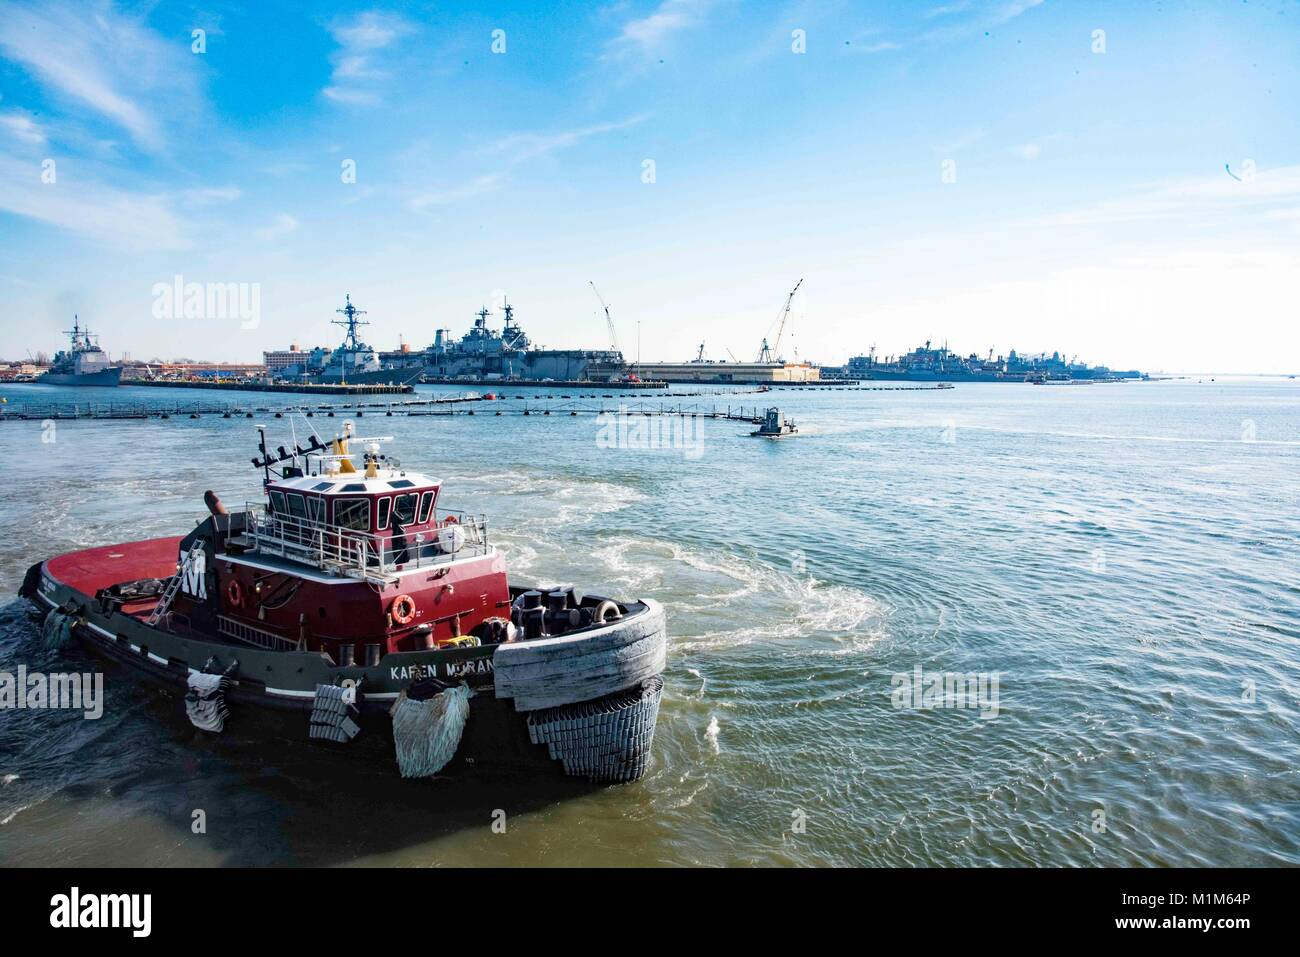 180126-N-LN243-121 NORFOLK (Jan. 25, 2018) Tugboats return to Norfolk Naval Station after assisting the Nimitz class - Stock Image